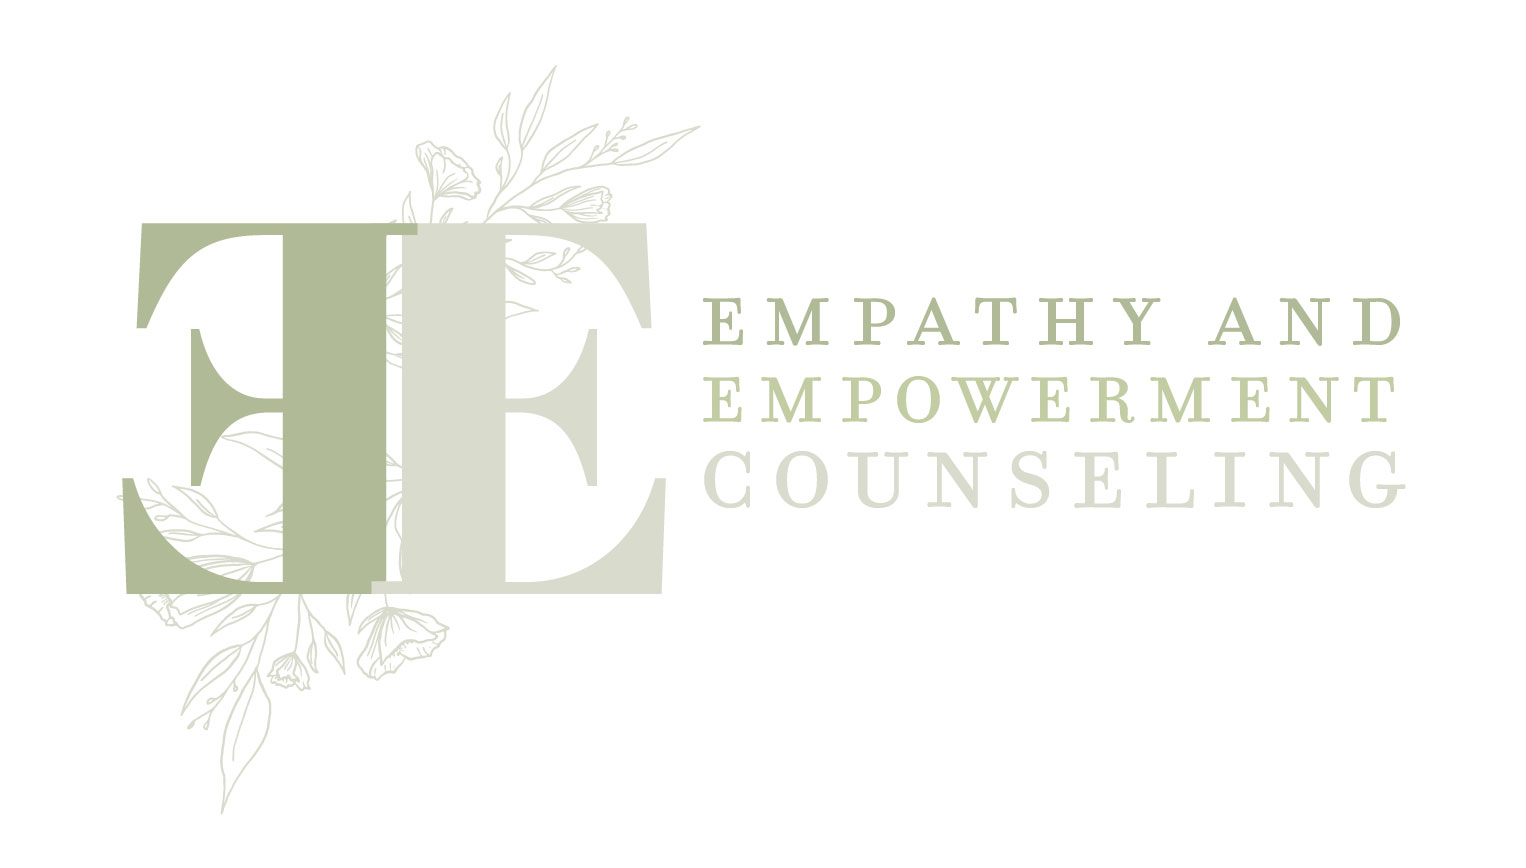 empathy and empowerment counseling services LLC Orlando Florida Therapy